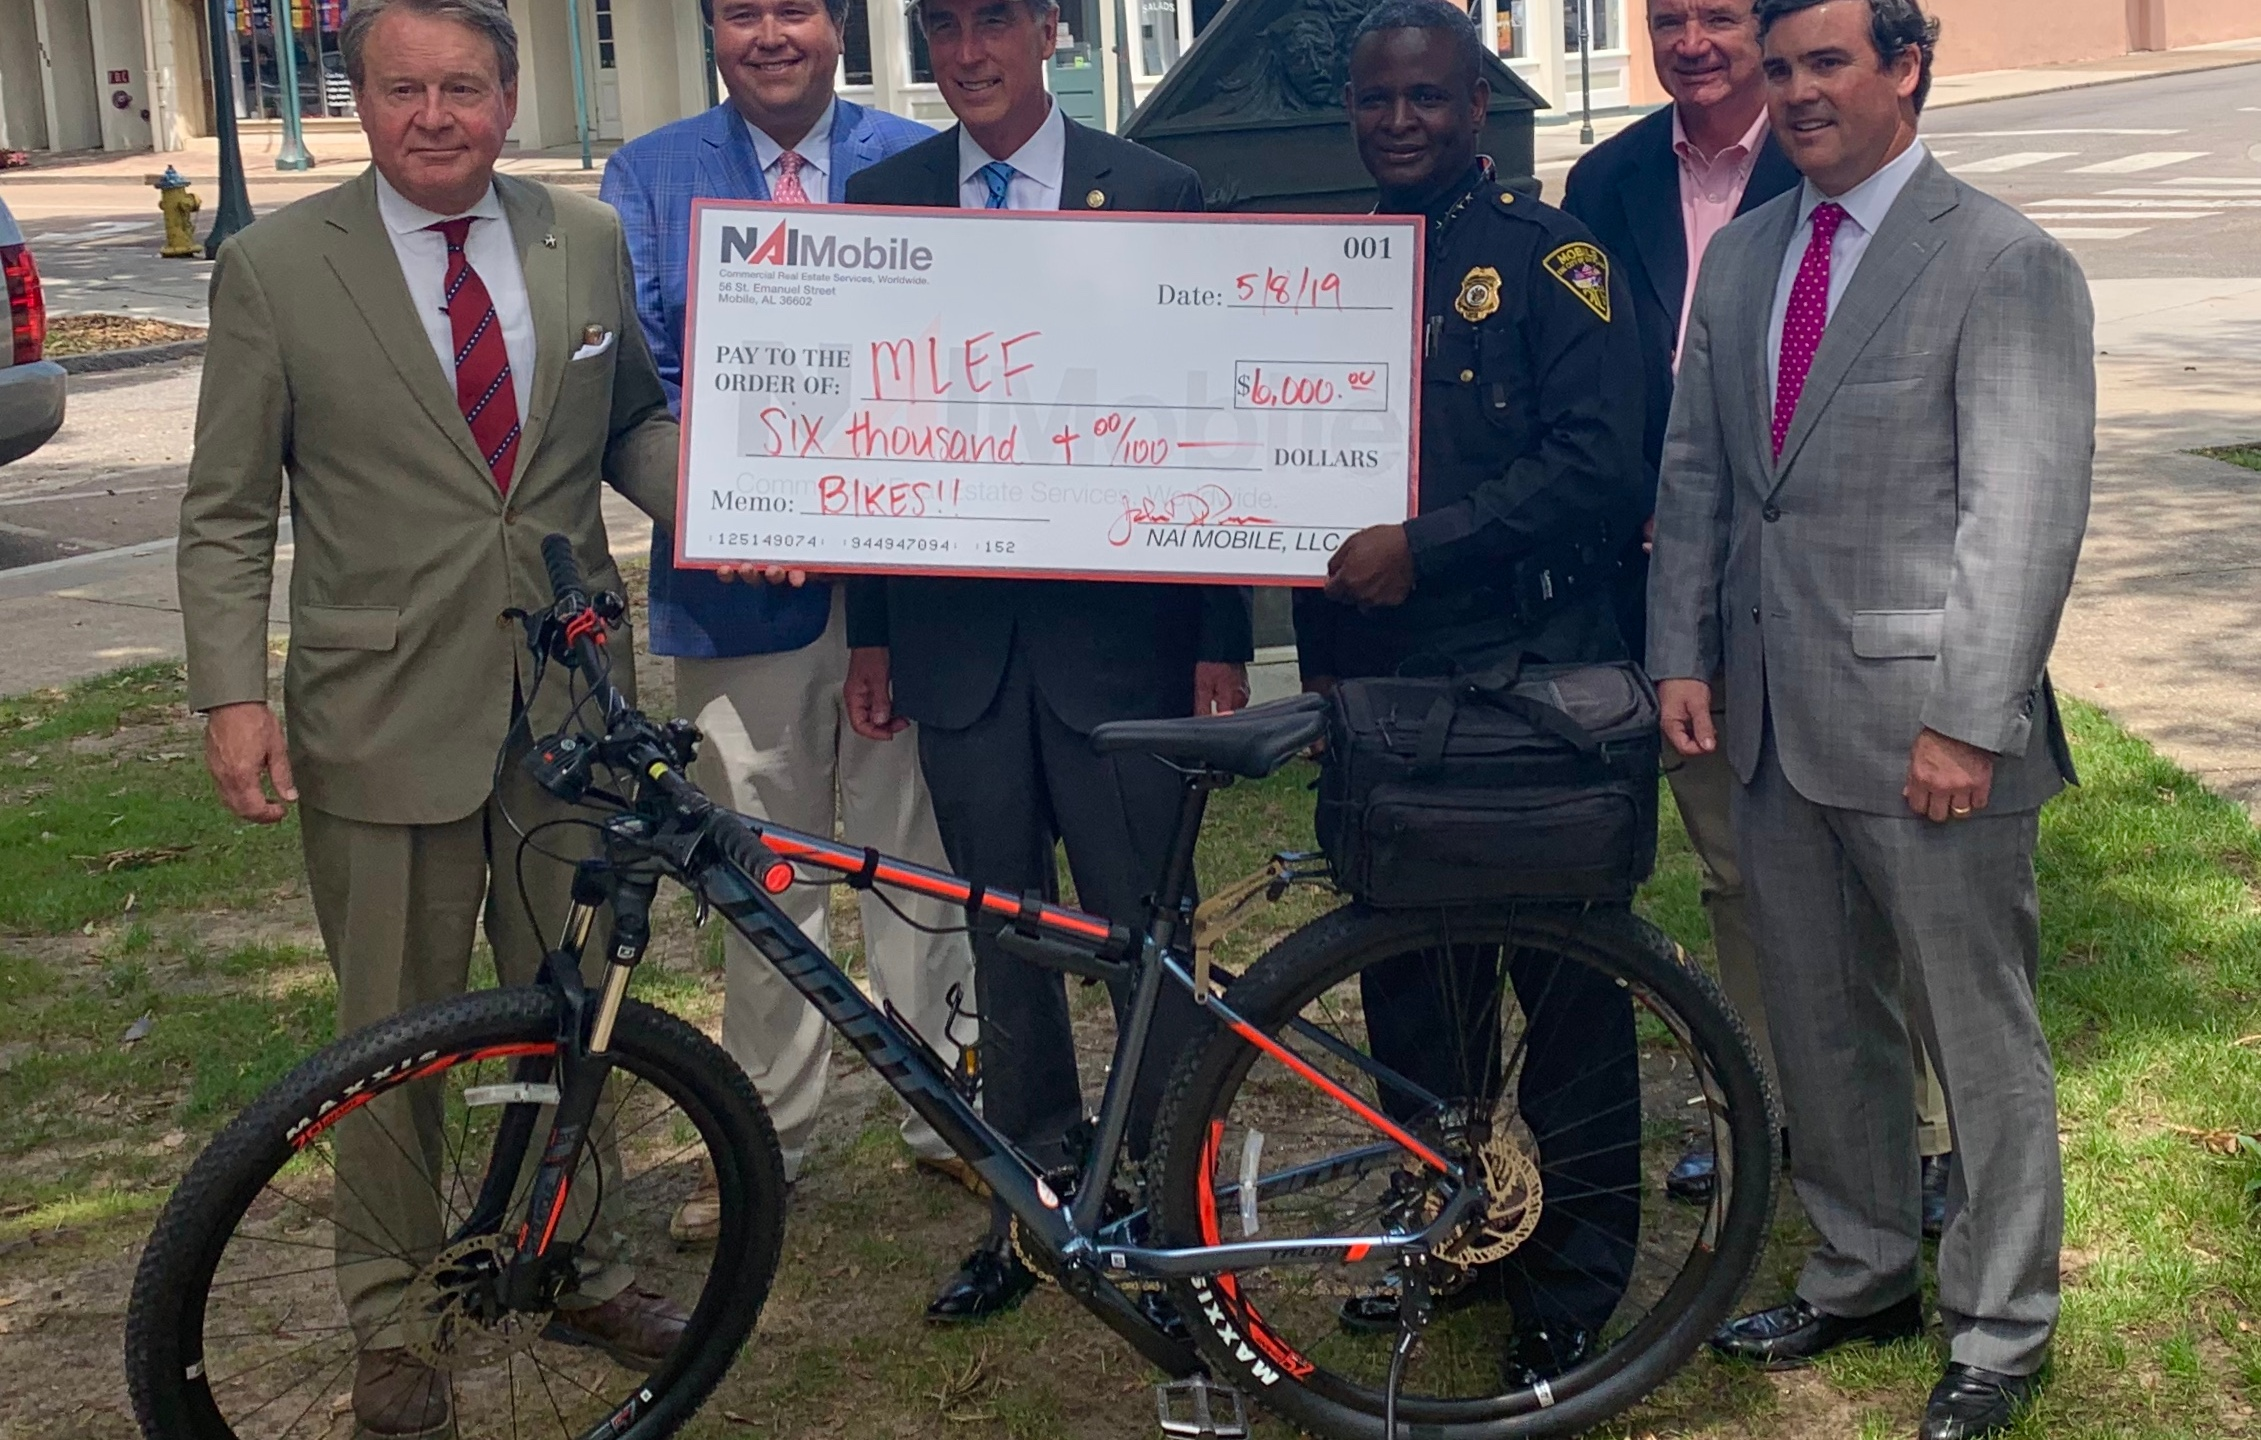 MPD BIKE DONATION